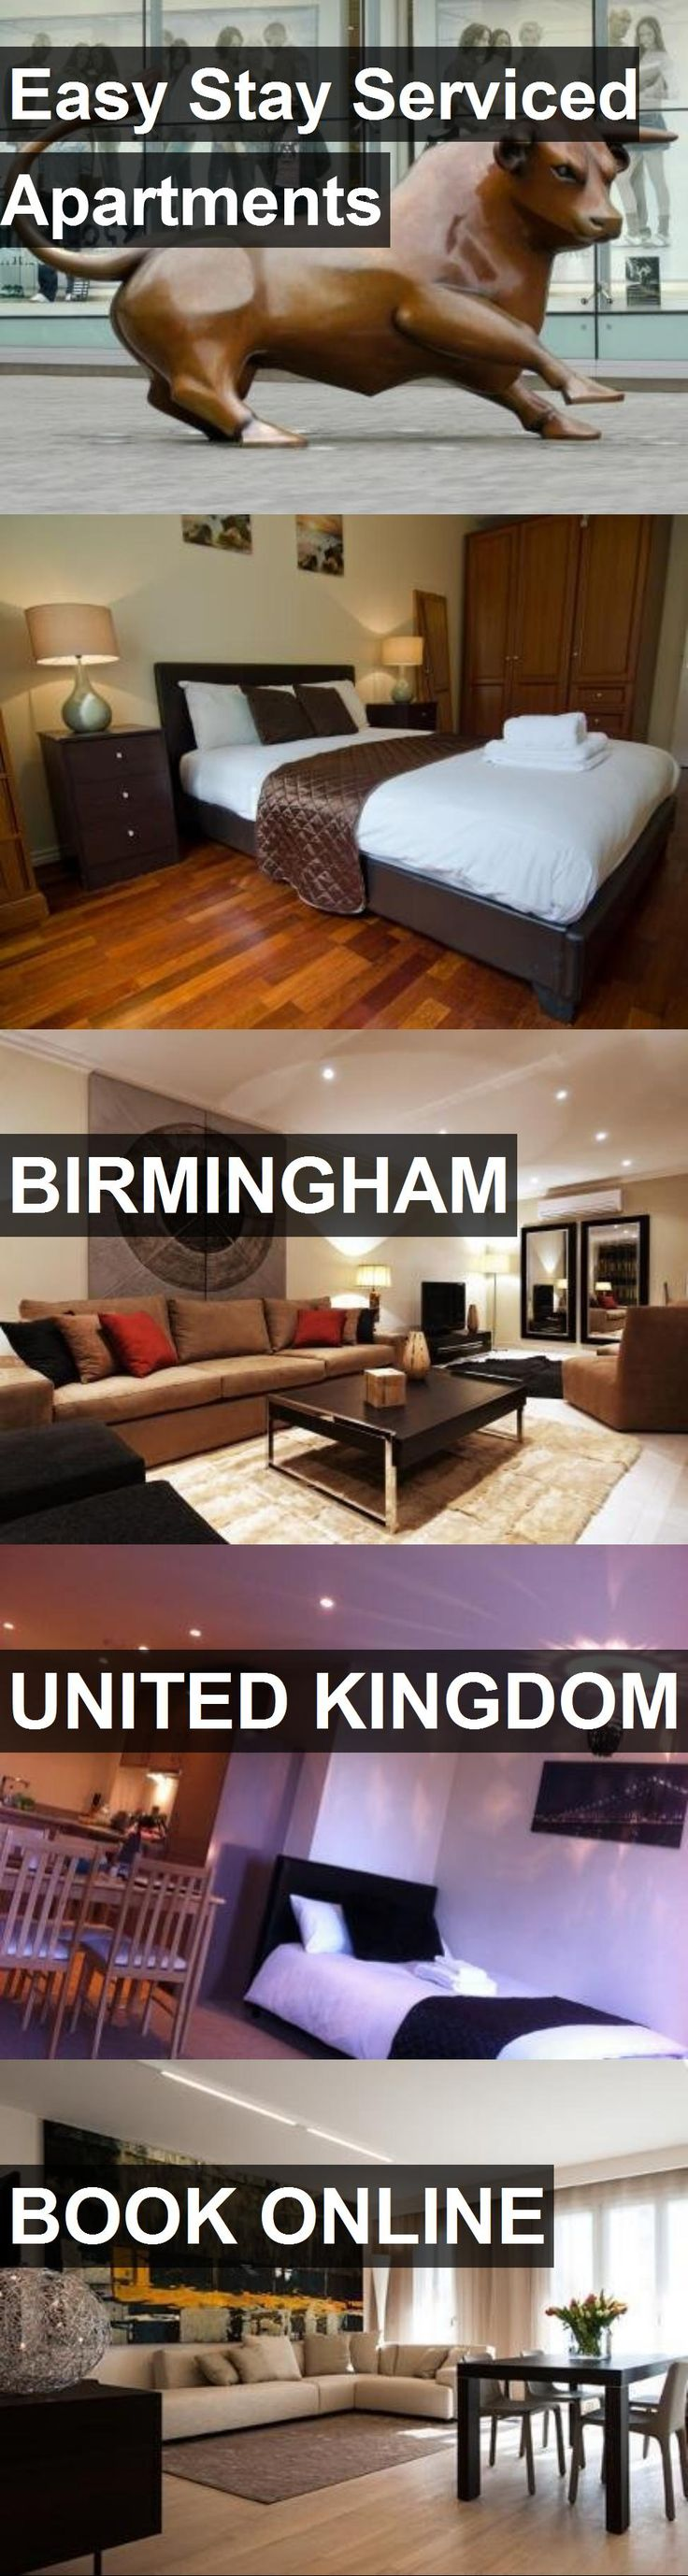 Easy Stay Serviced Apartments in Birmingham, United Kingdom. For more information, photos, reviews and best prices please follow the link. #UnitedKingdom #Birmingham #travel #vacation #apartment